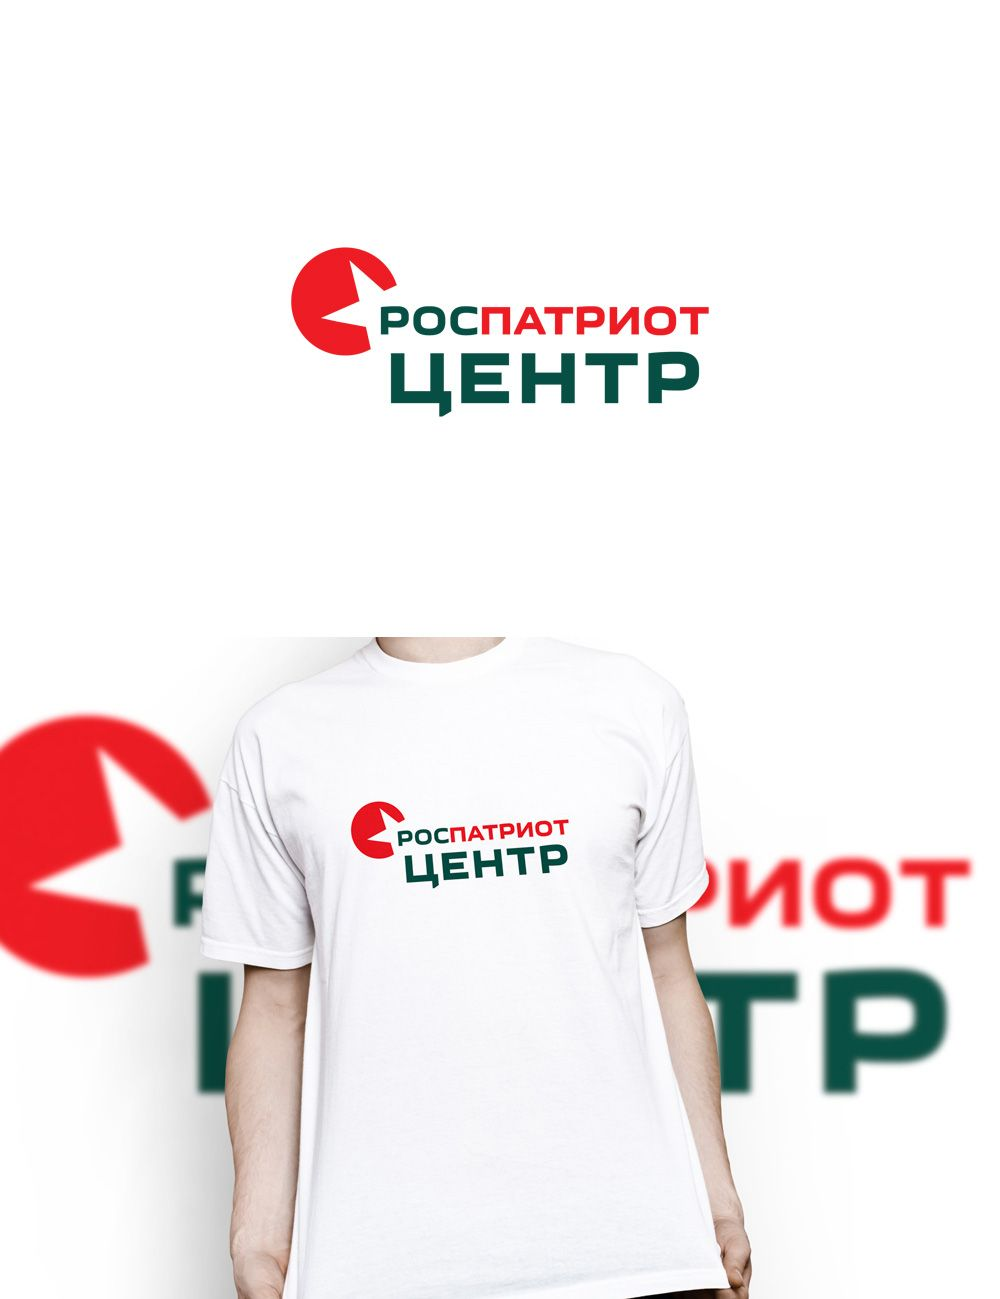 Логотип для роспатриотцентр - дизайнер GreenRed